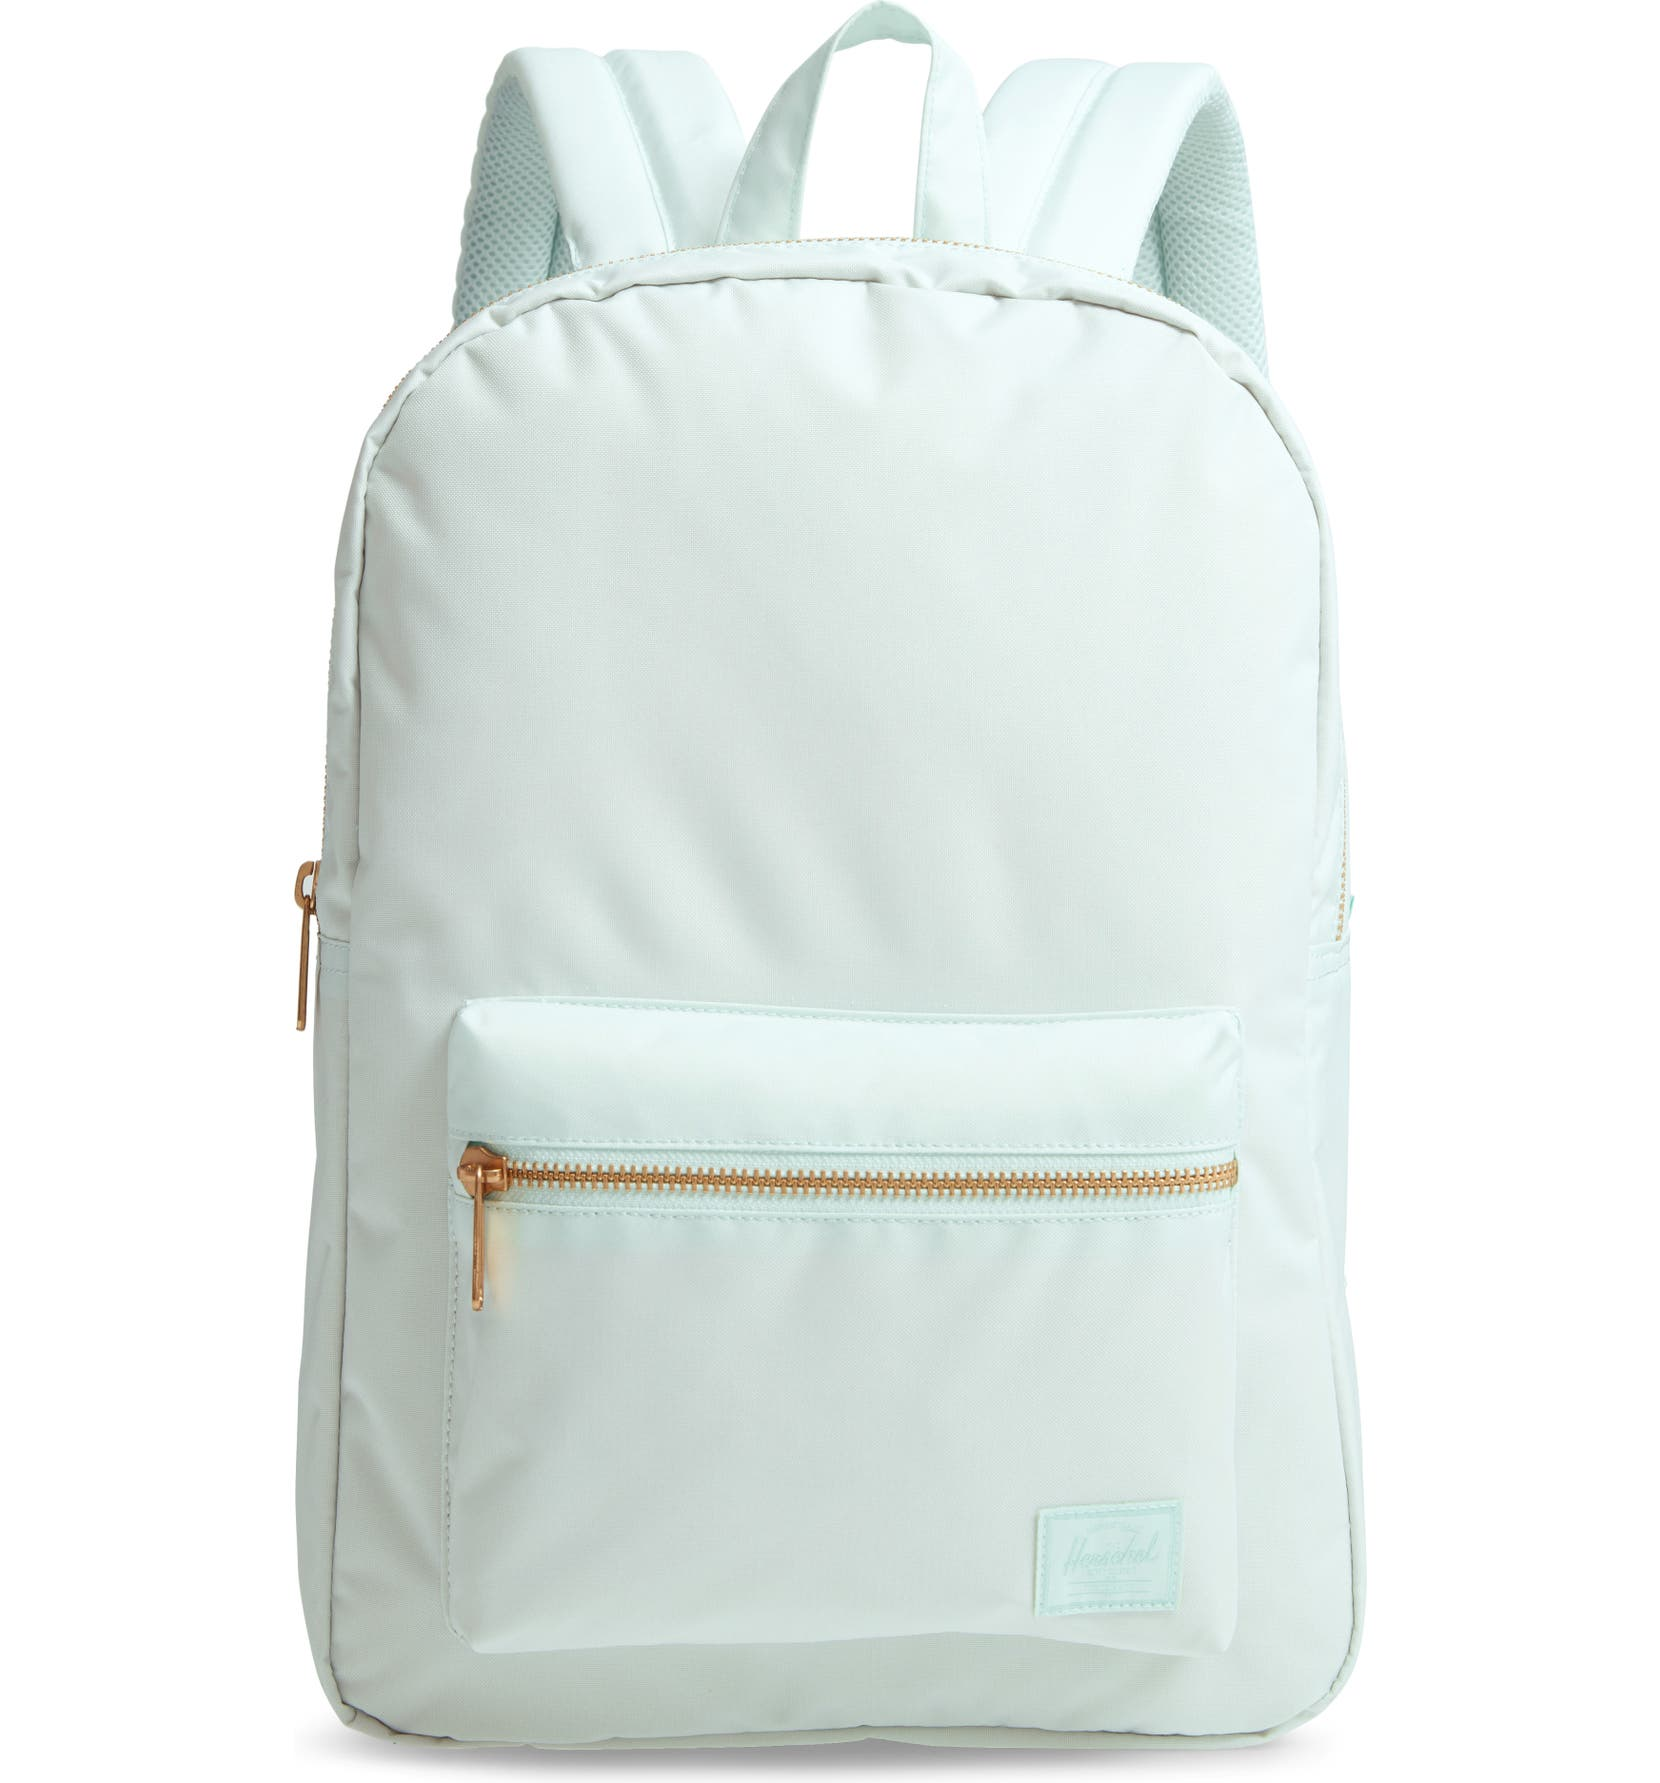 744e6c262a5 Herschel Supply Co. 'Settlement Mid Volume' Backpack | Nordstrom